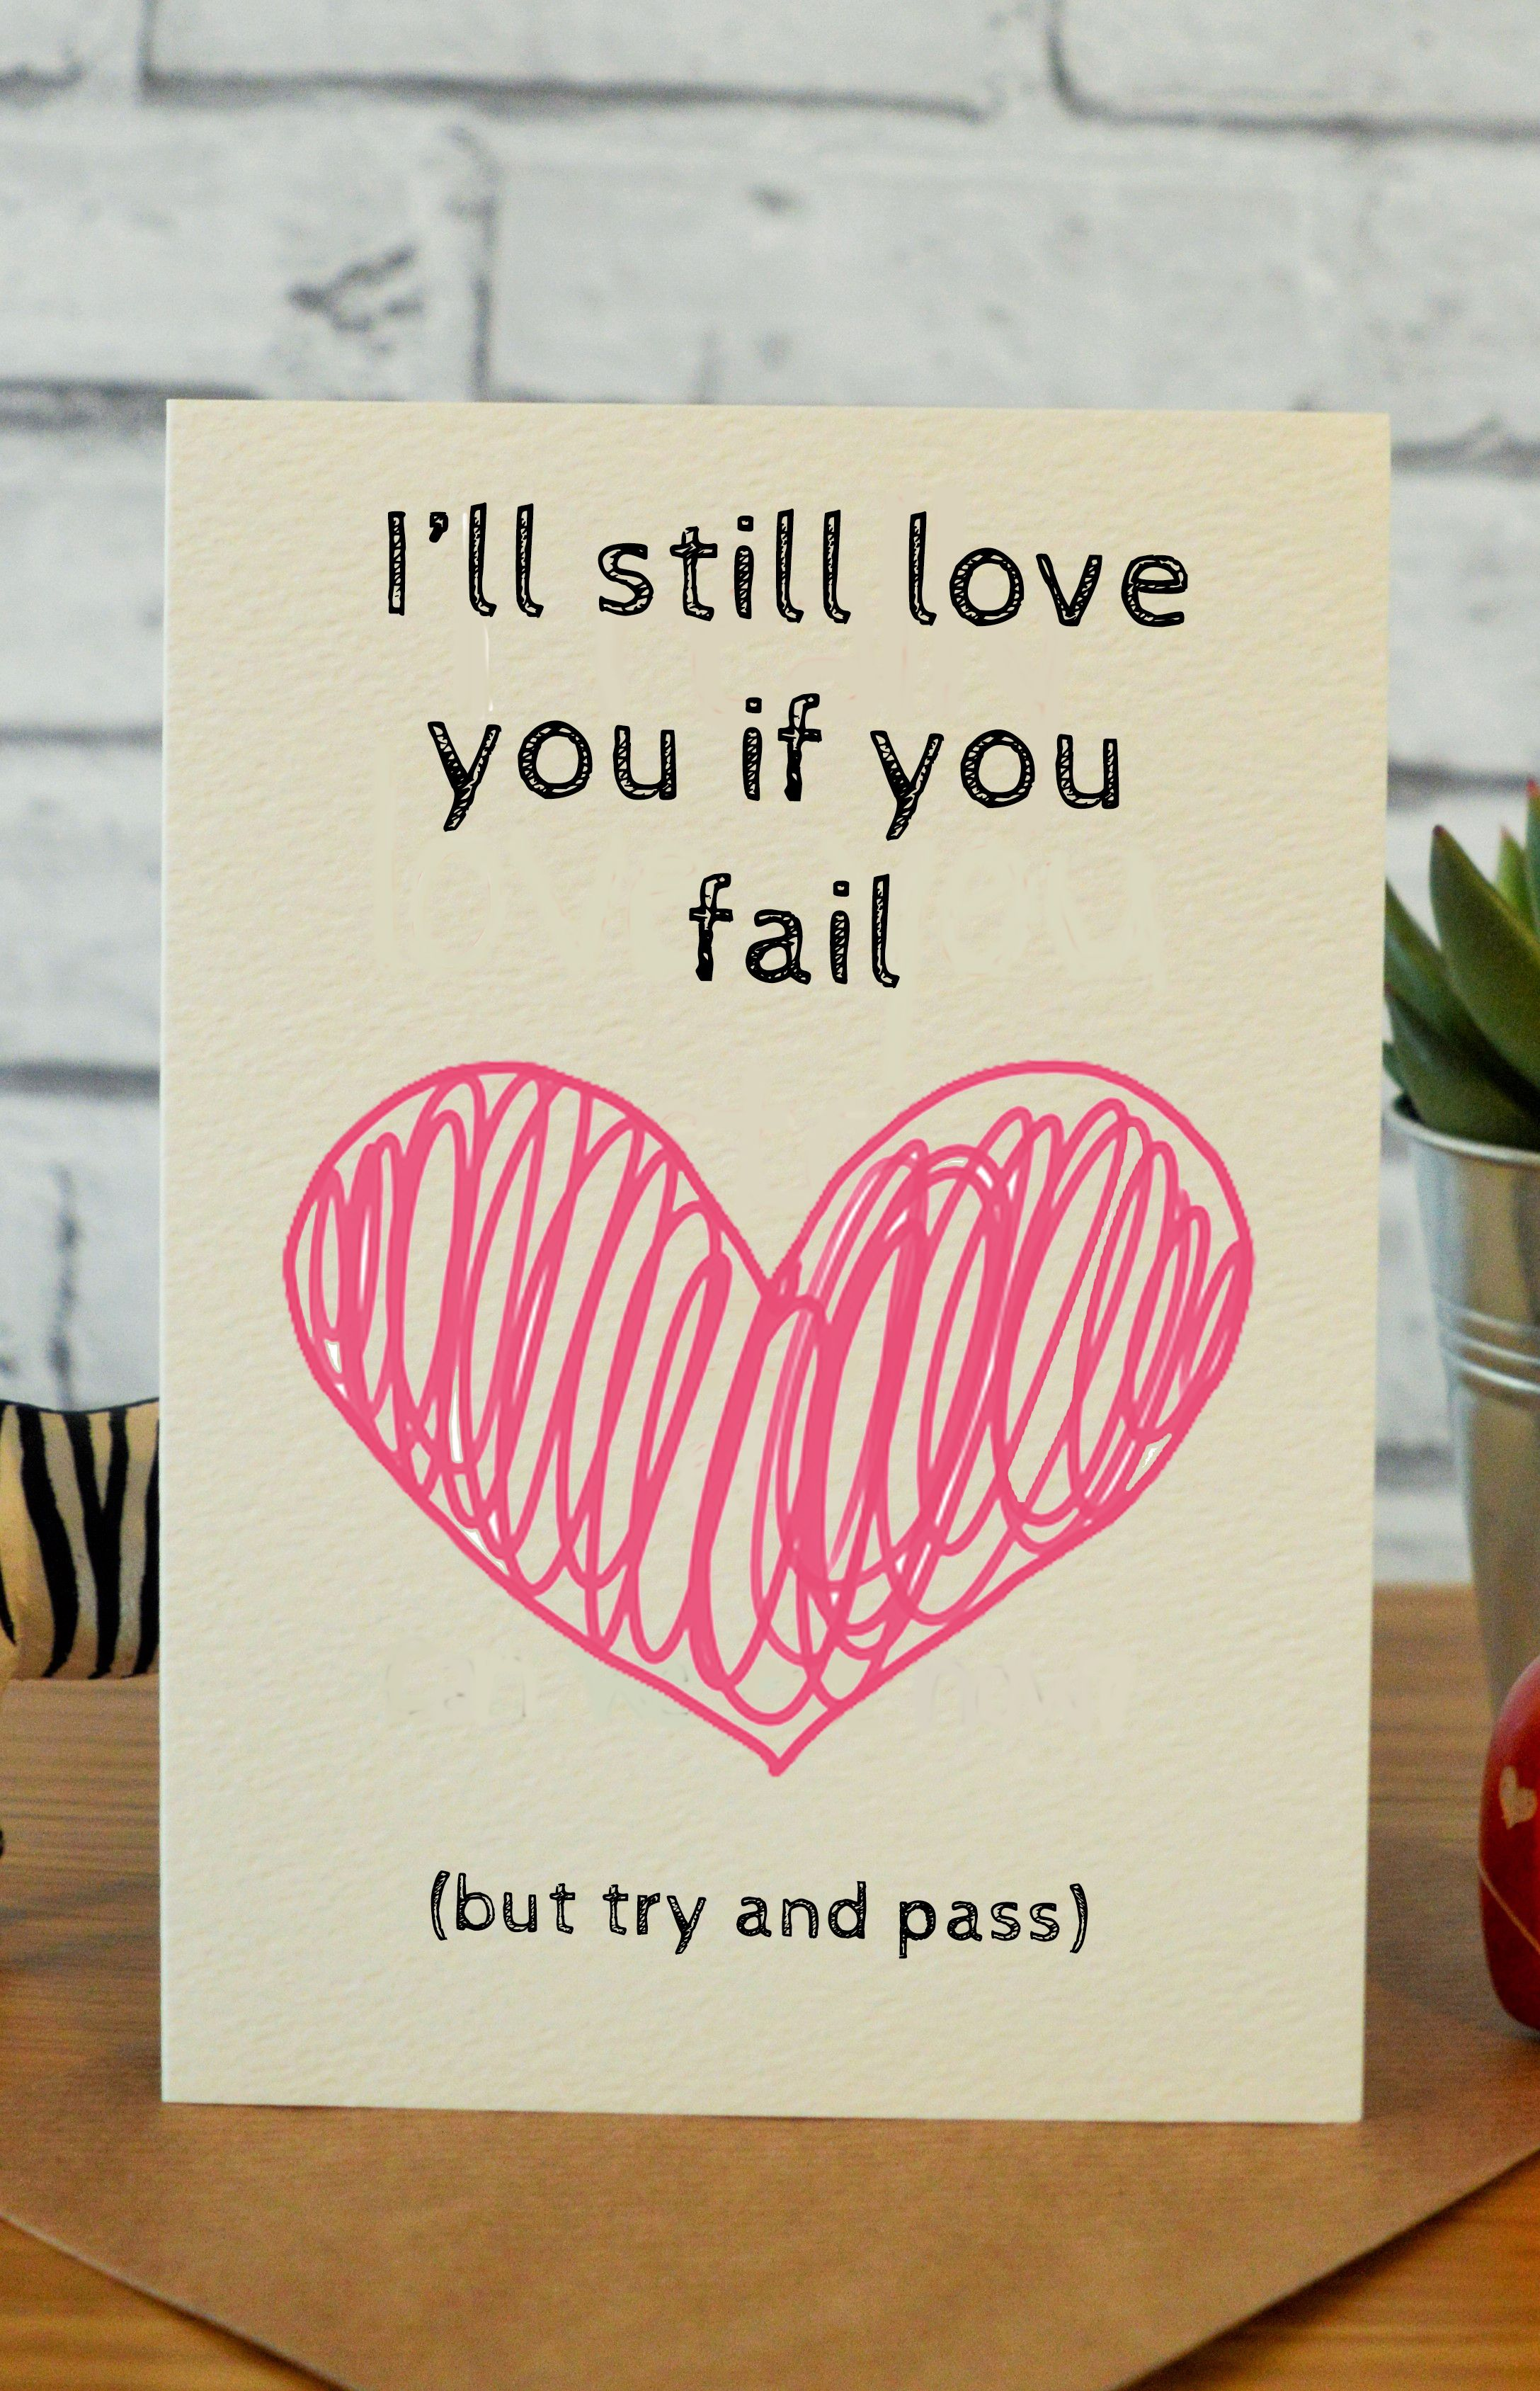 Still love you cards and messages funny good luck cards exam quotes good luck gifts handmade cards hilarious kristyandbryce Images